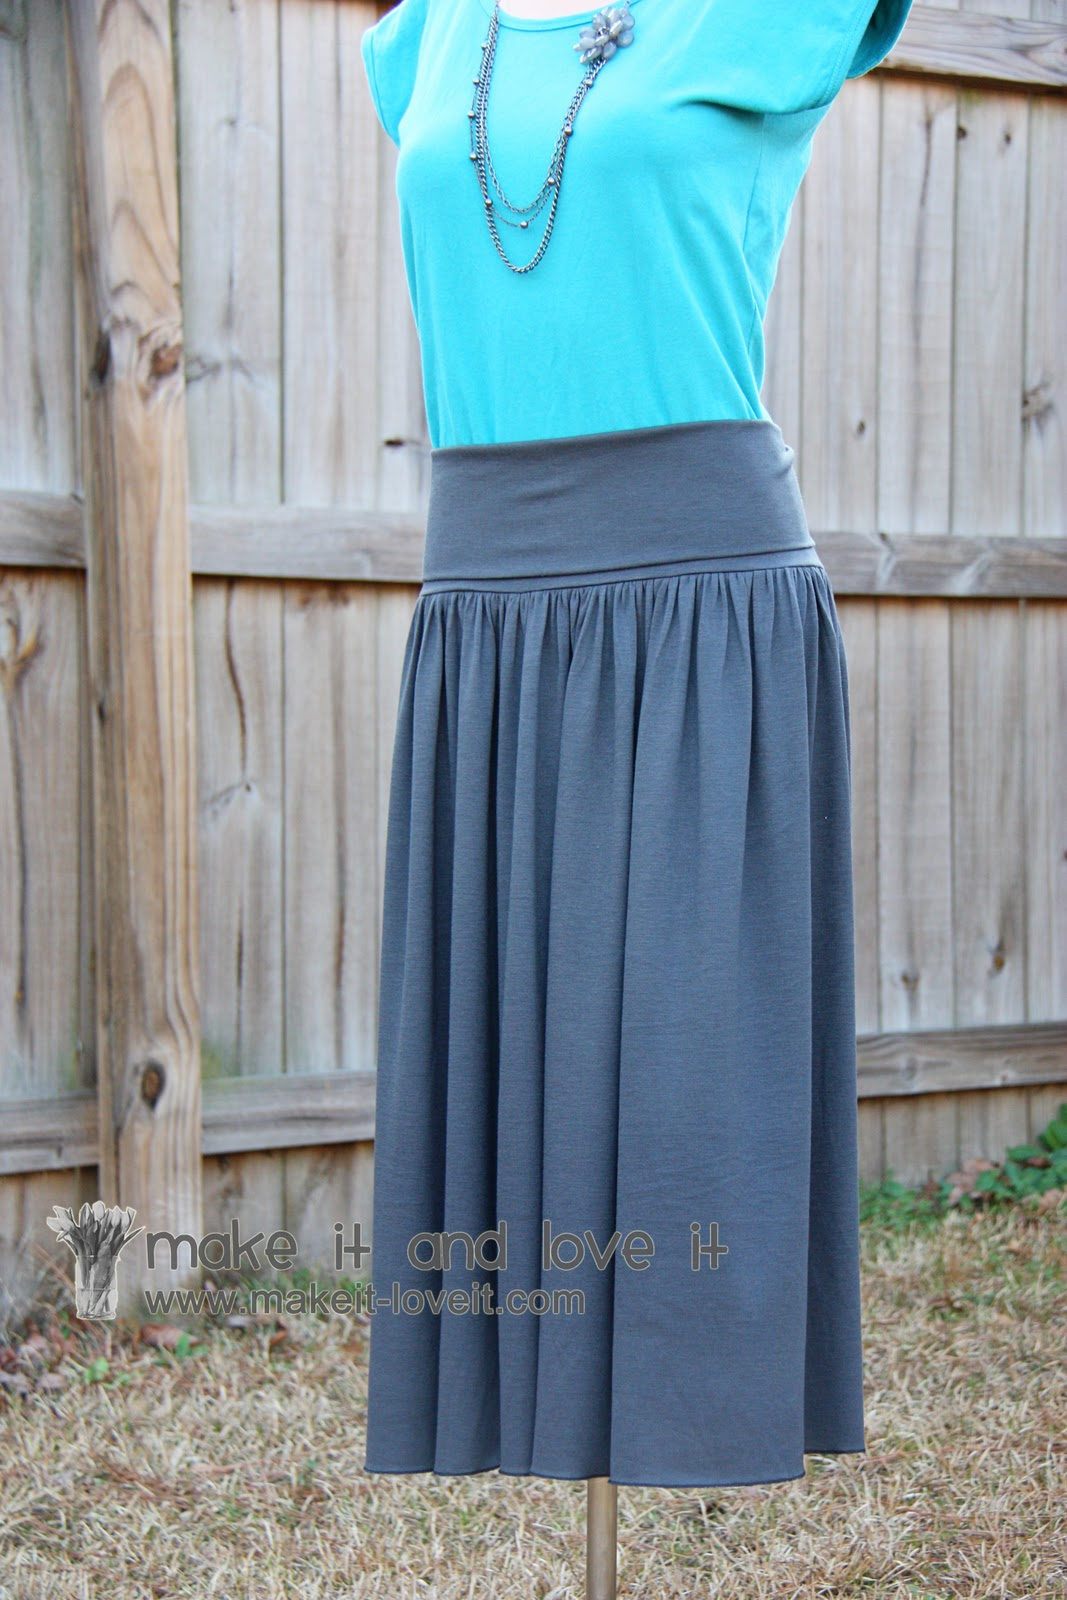 s skirt with style waist band make it and it